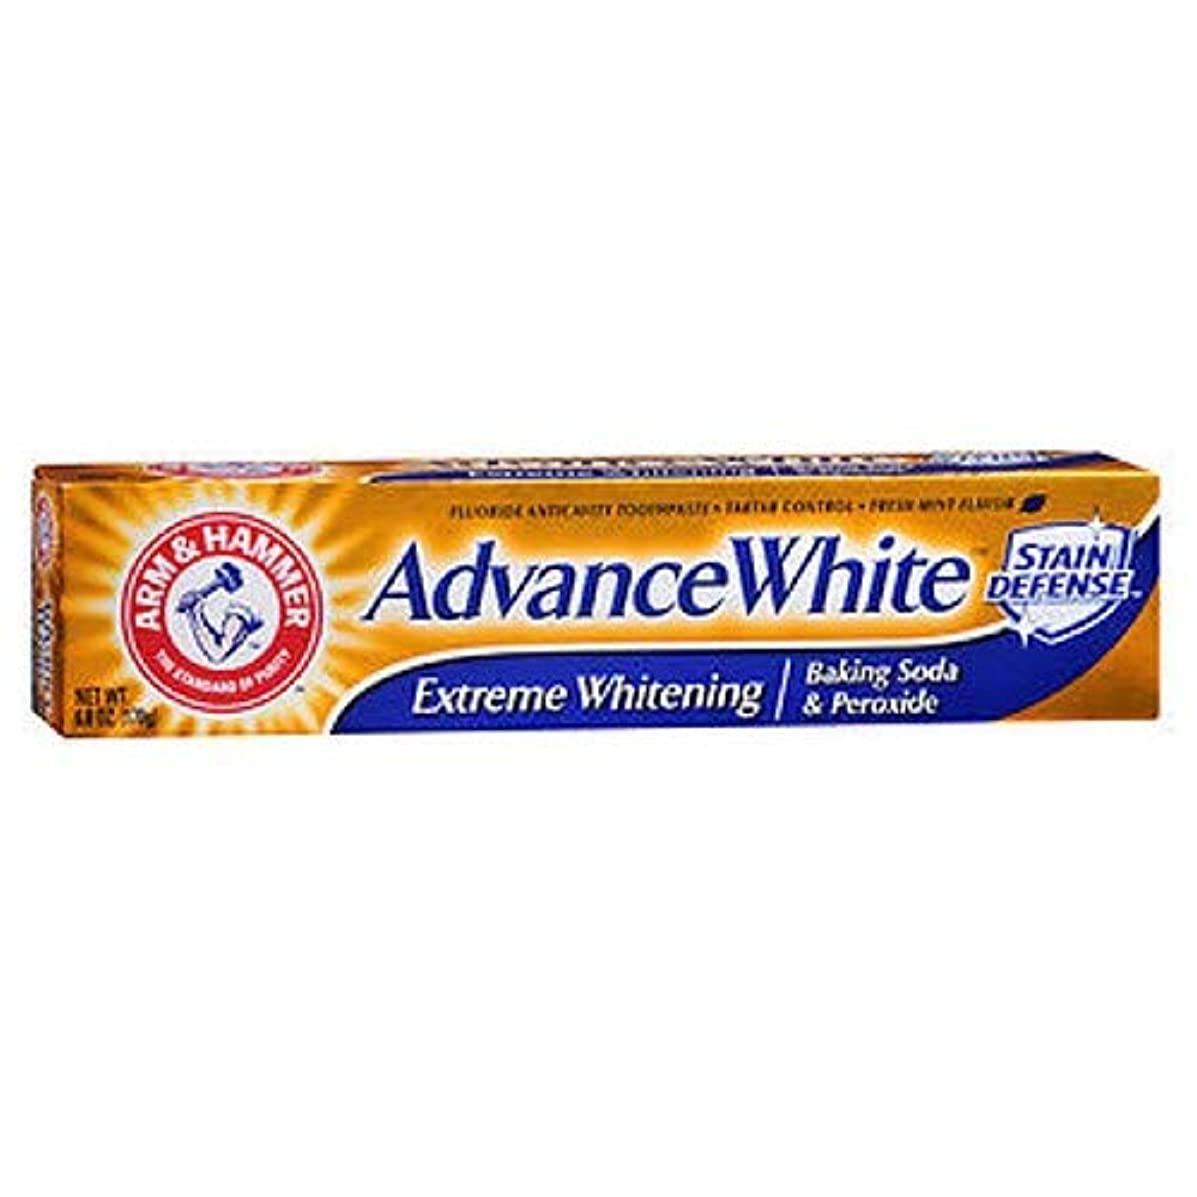 クライアントパレードマイルストーン海外直送品Arm & Hammer Arm & Hammer Advance White Fluoride Toothpaste Baking Soda And Peroxide, Baking Soda And Peroxide...